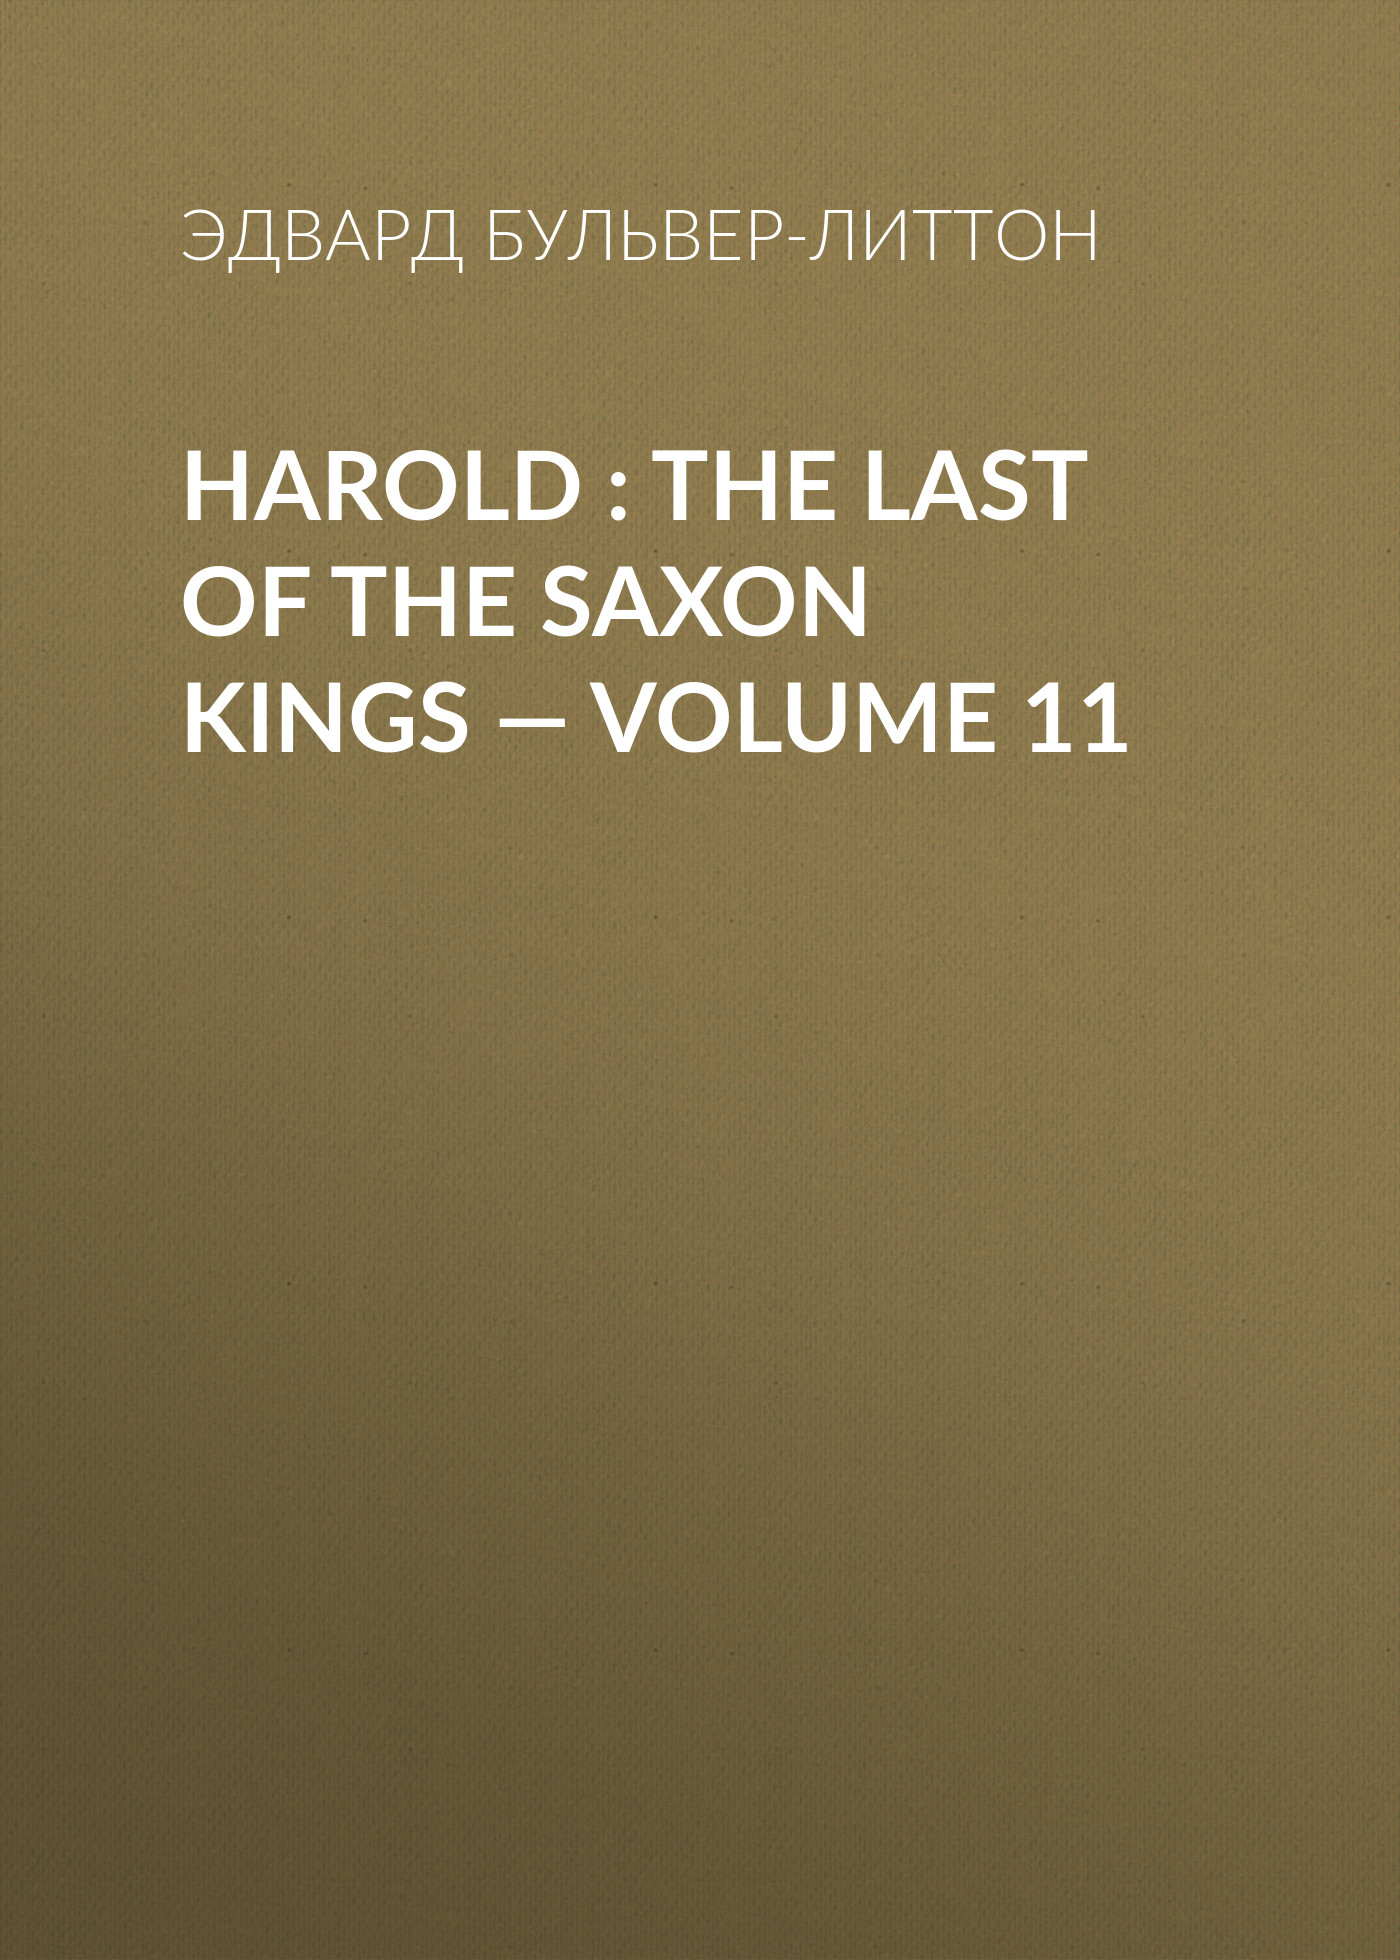 Эдвард Бульвер-Литтон Harold : the Last of the Saxon Kings — Volume 11 эдвард бульвер литтон harold the last of the saxon kings volume 06